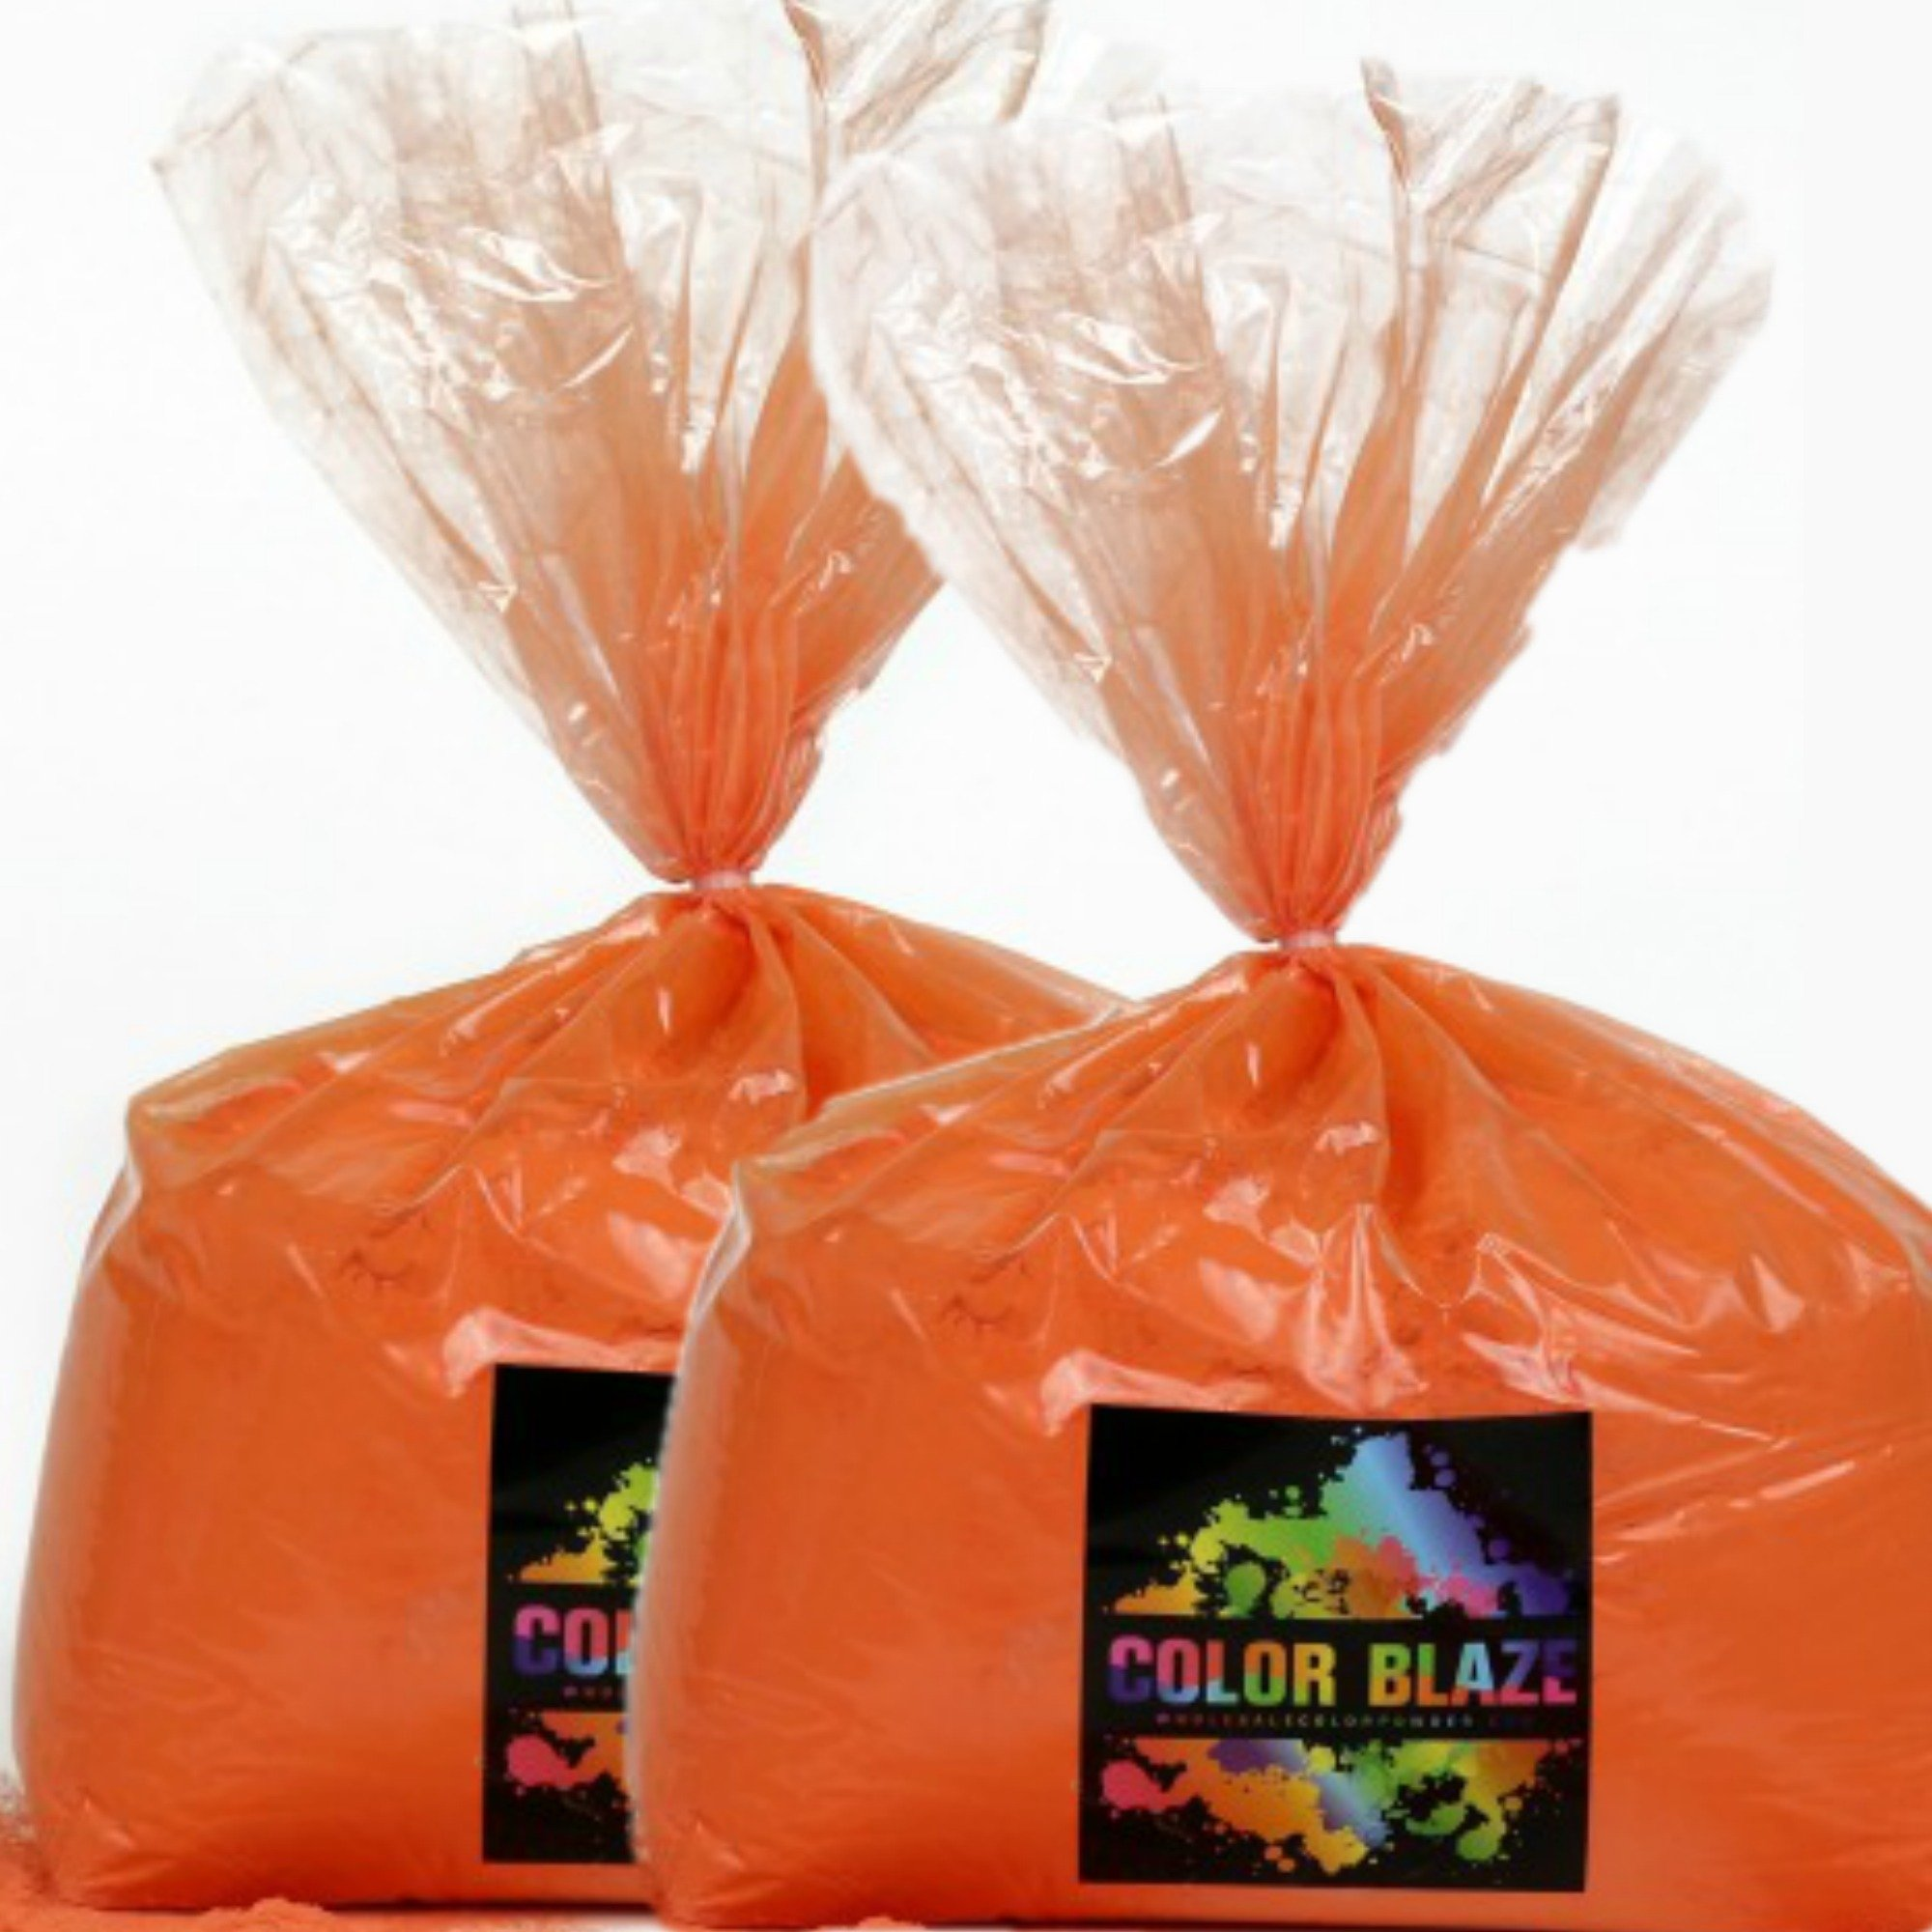 Color Powder Orange 50lbs - (Two 25lb bags) Ideal for color run events, youth group color wars, Holi events and more! Purple, Blue, Green, Yellow, Red, Pink and Teal Available